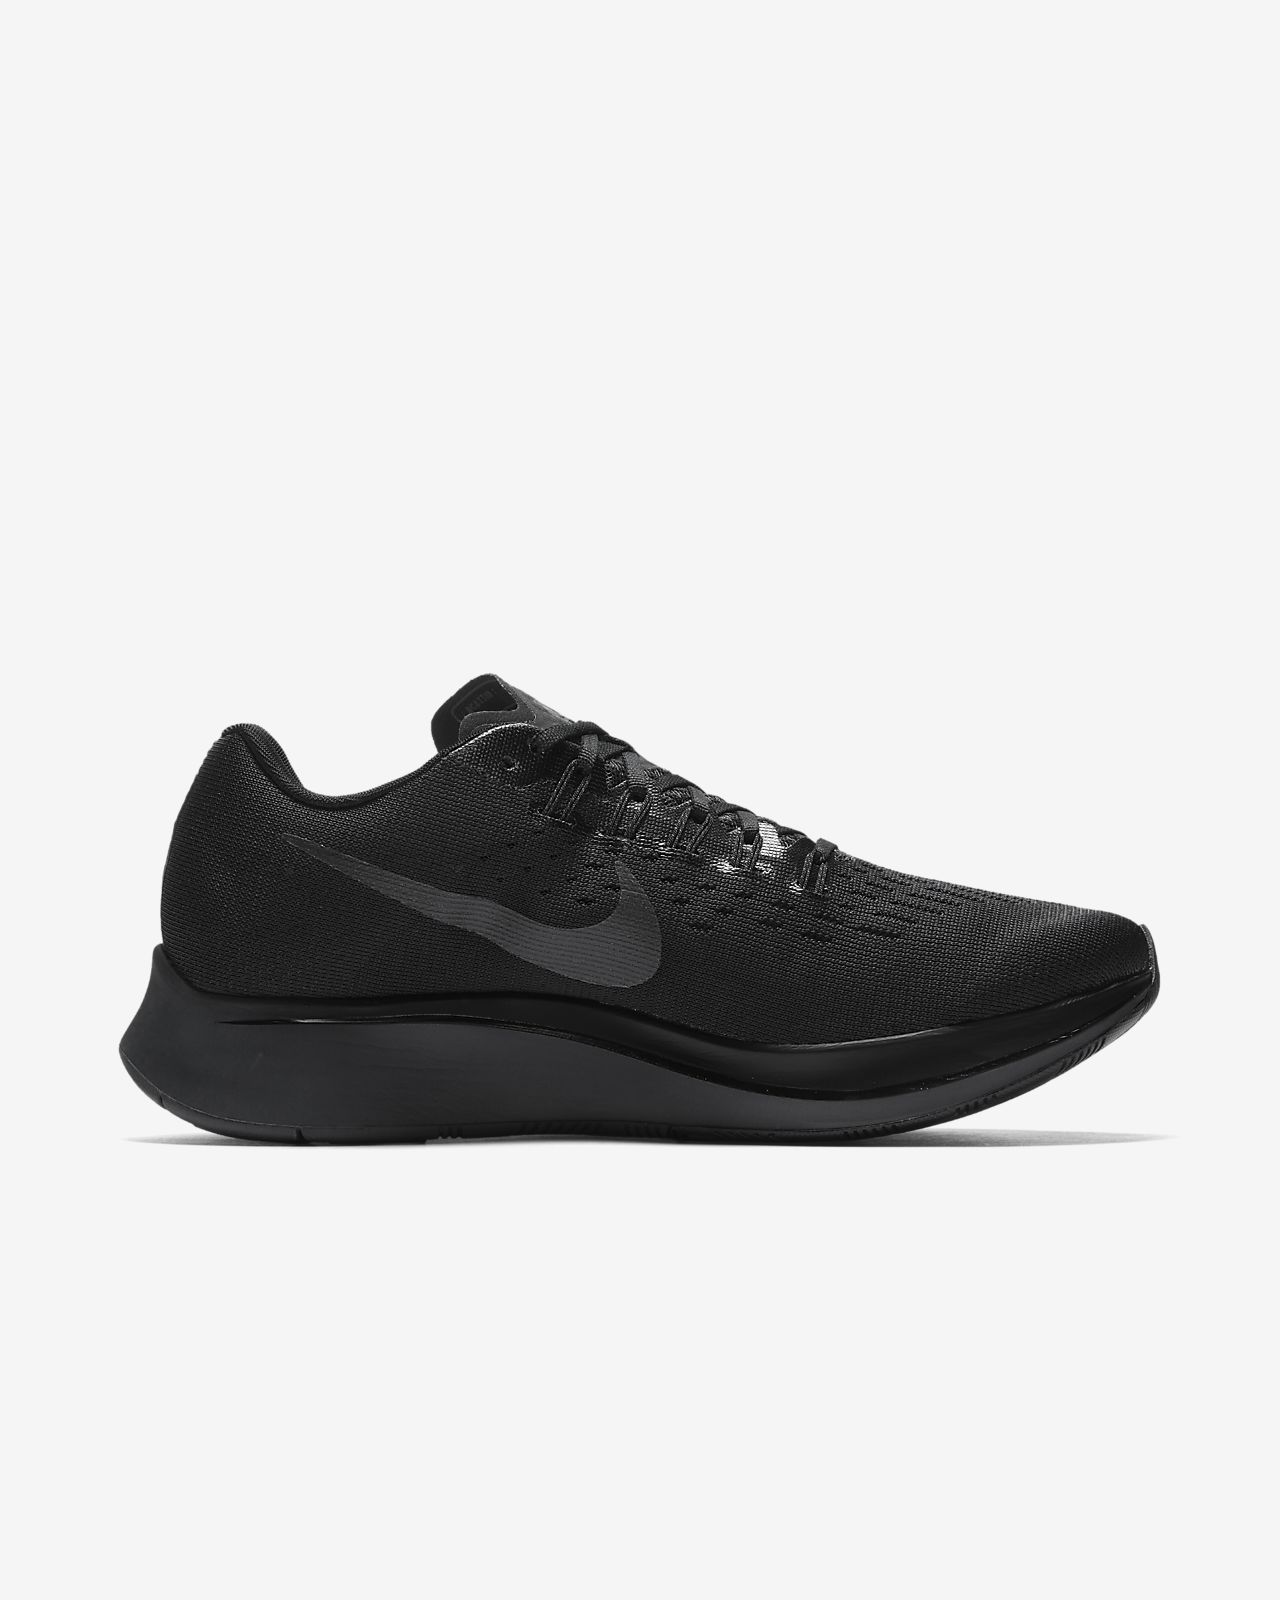 mens nike free run 5.0 sale nz